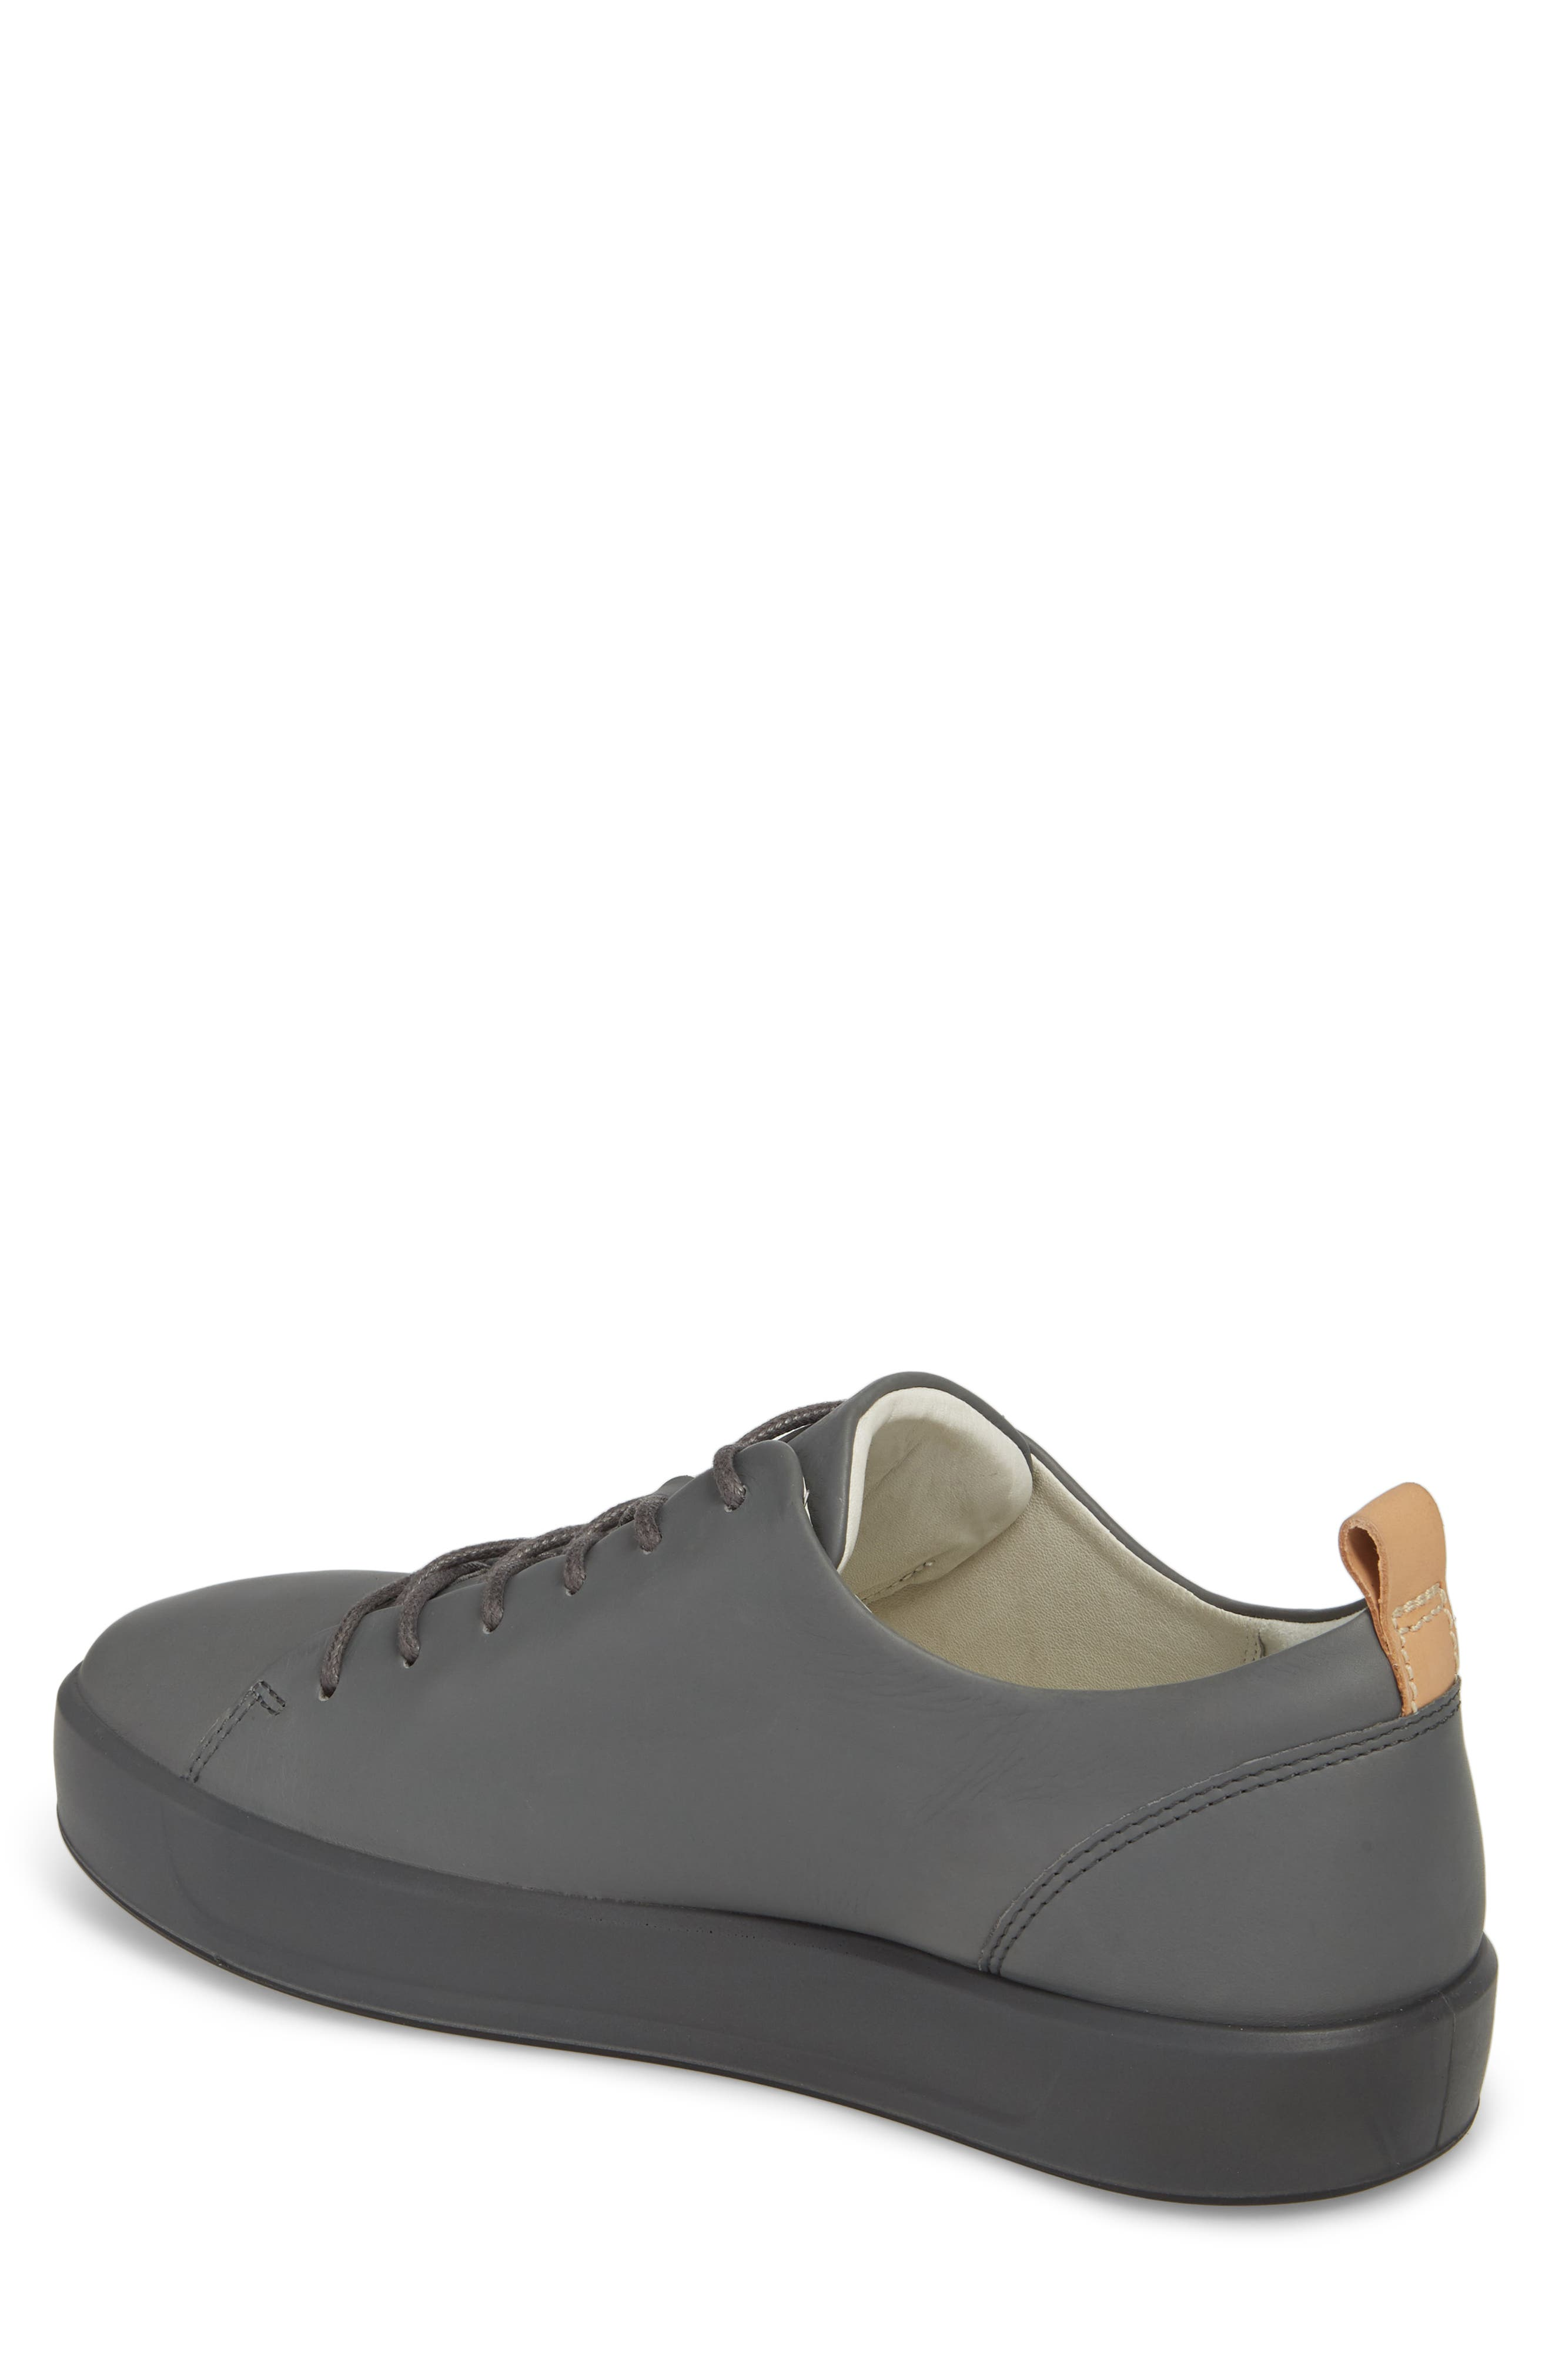 Soft 8 Low Top Sneaker,                             Alternate thumbnail 2, color,                             Urban Grey Leather